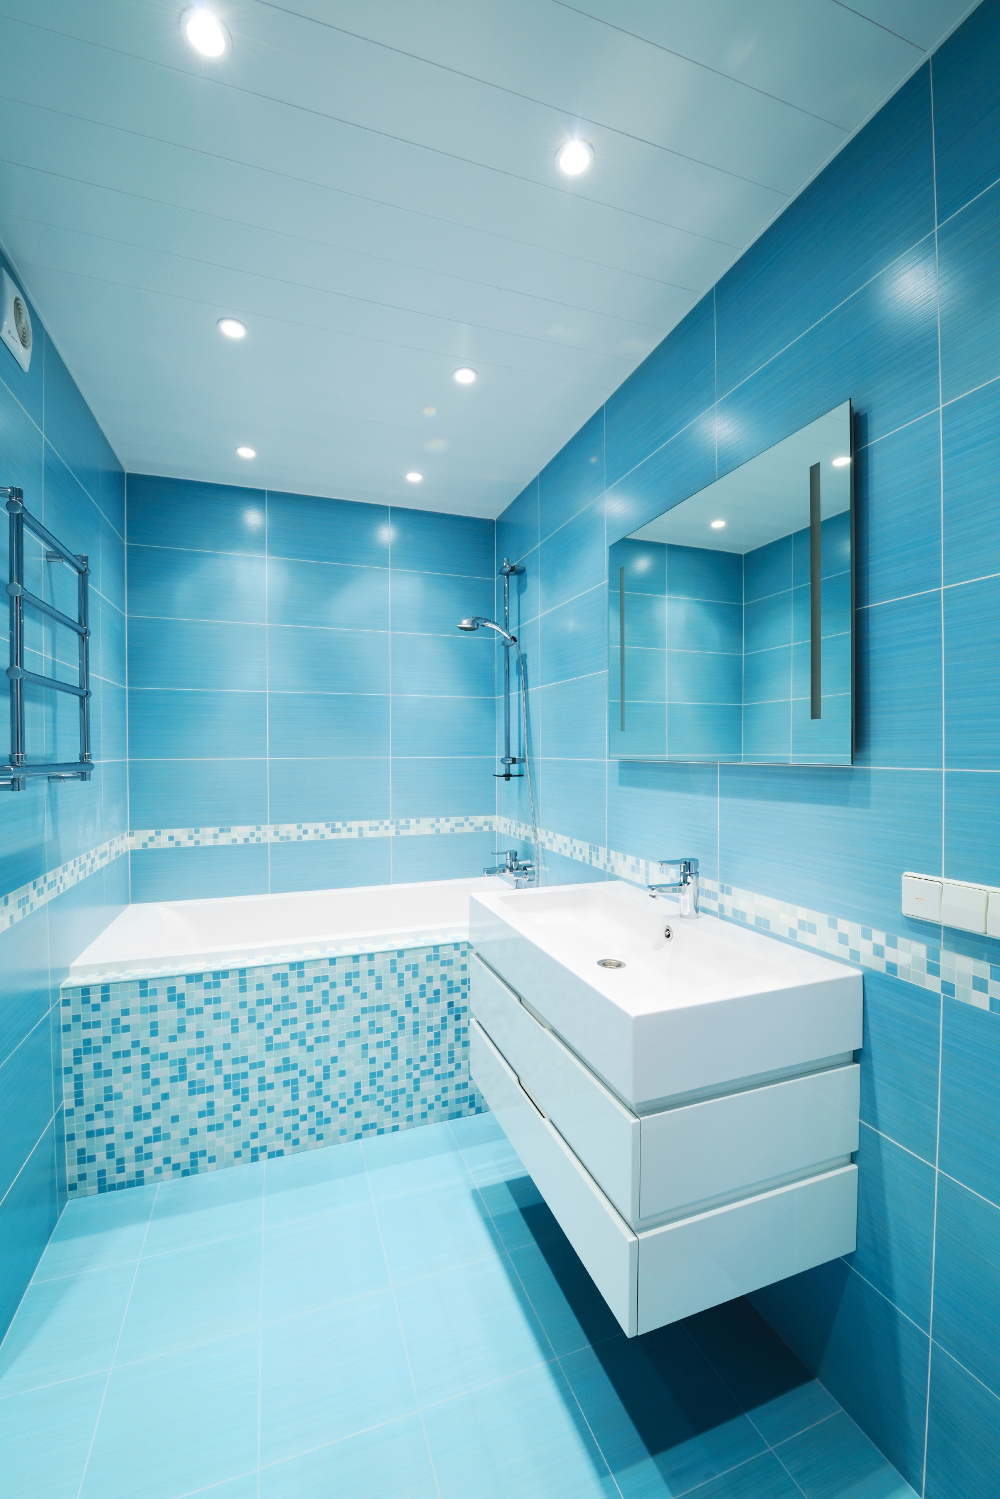 Bathroom Installation And Tiling East Sussex And Kent Boilers Plumbers And Bathroom Fitters